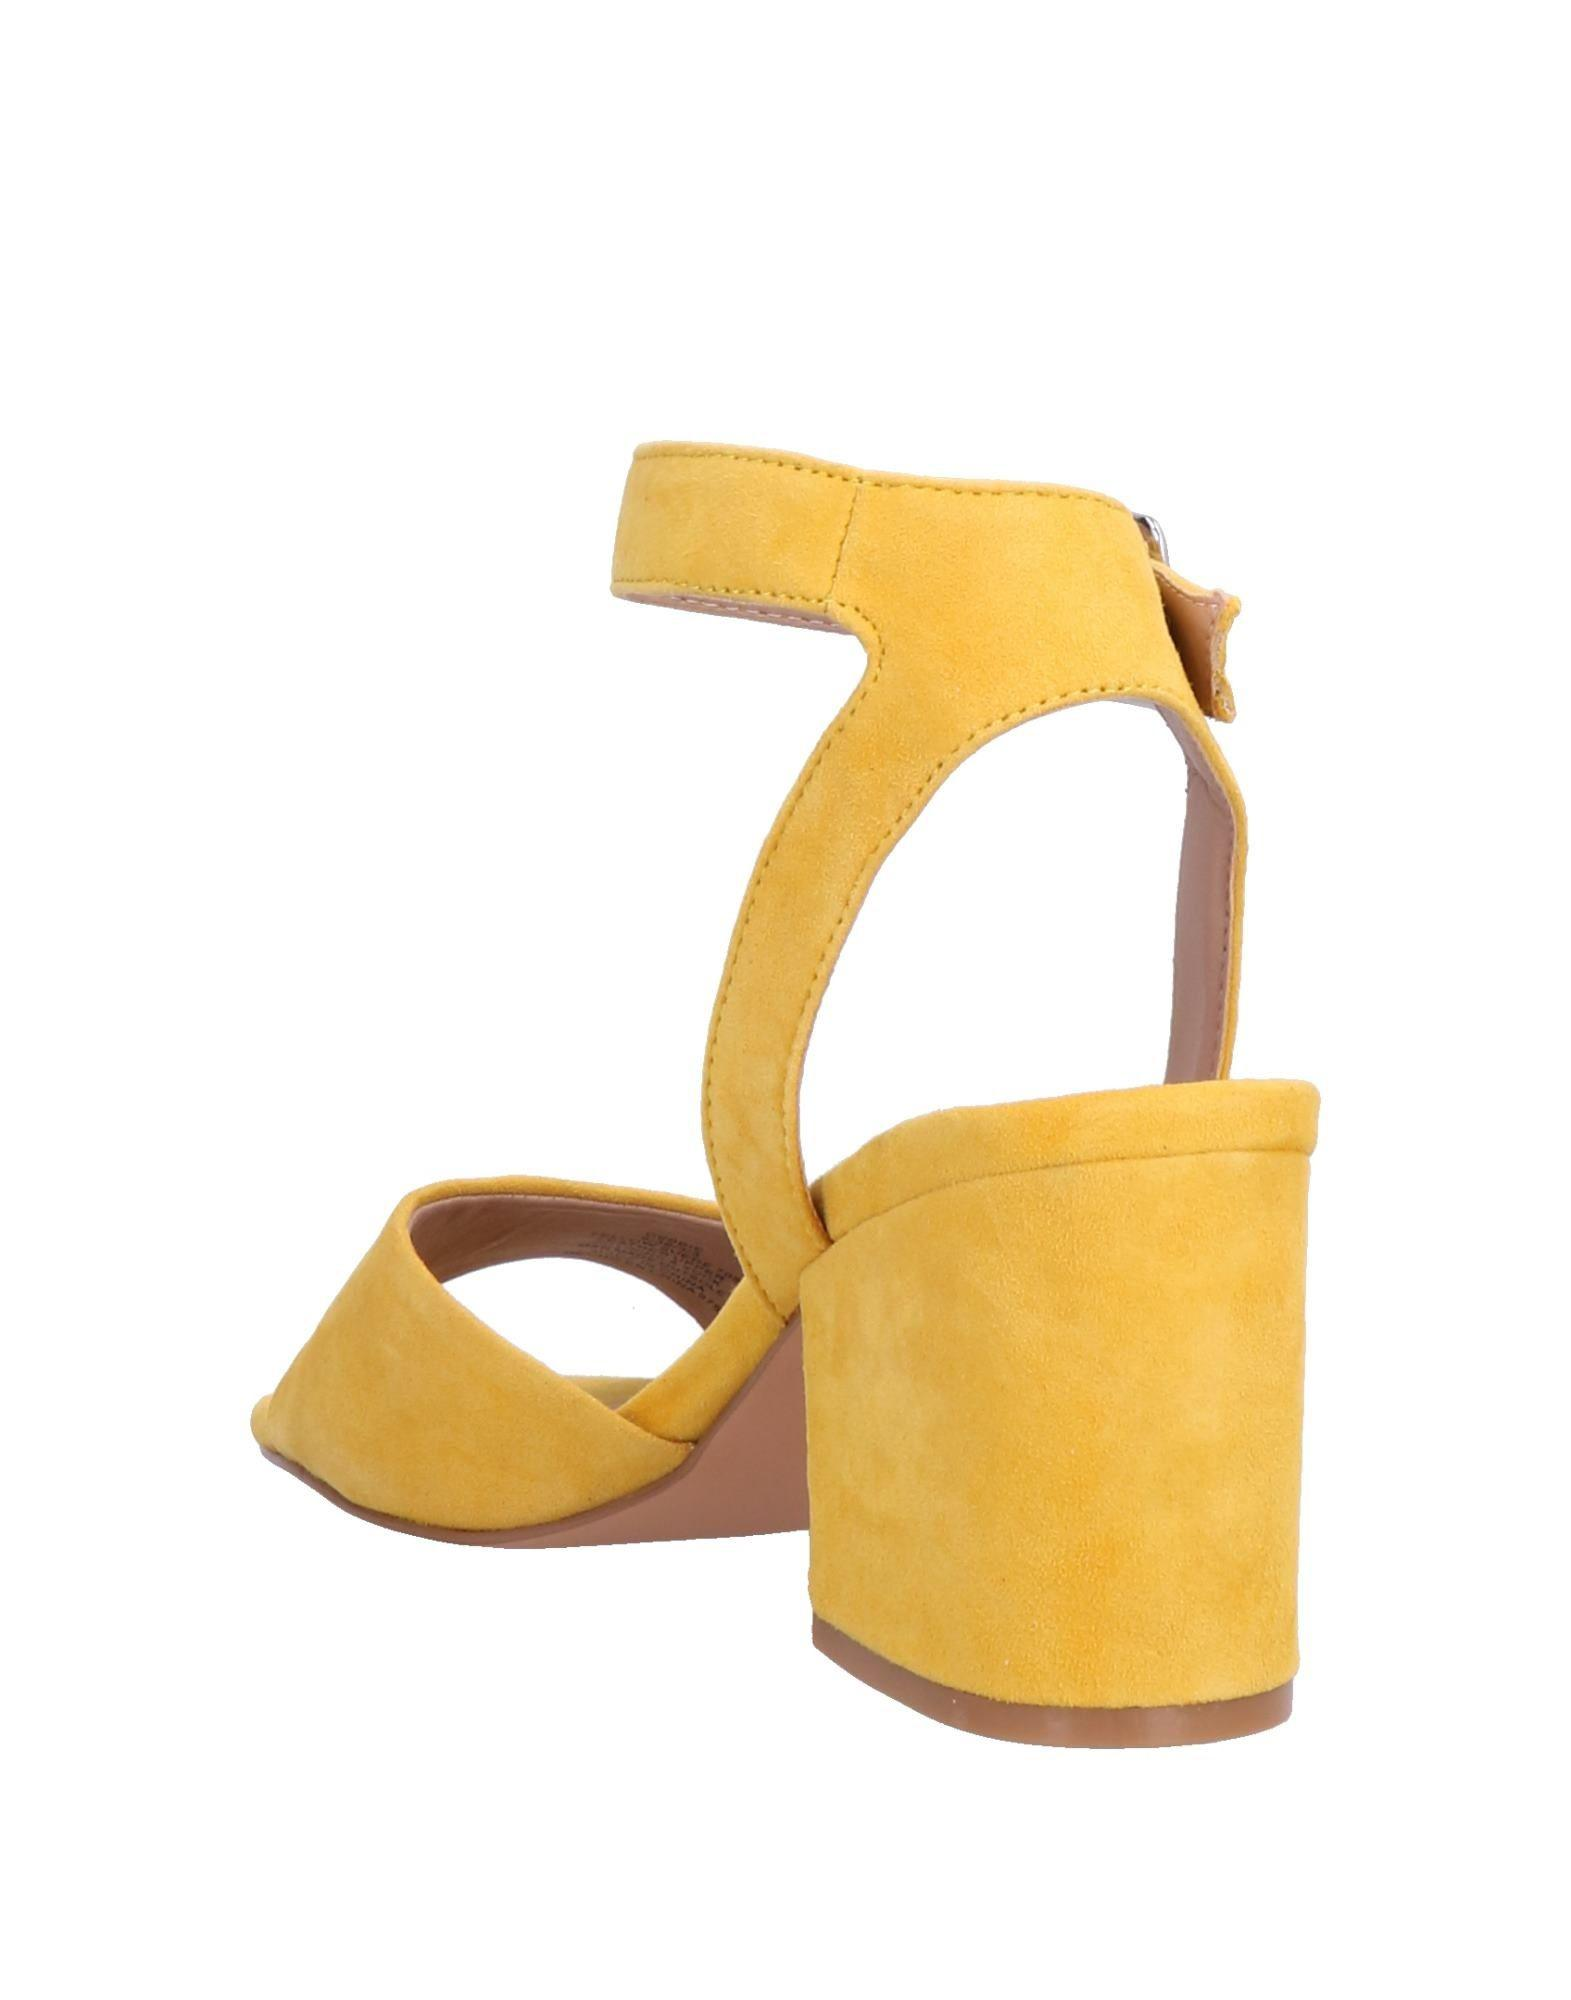 e4caef93a9 Lyst - Steve Madden Sandals in Yellow